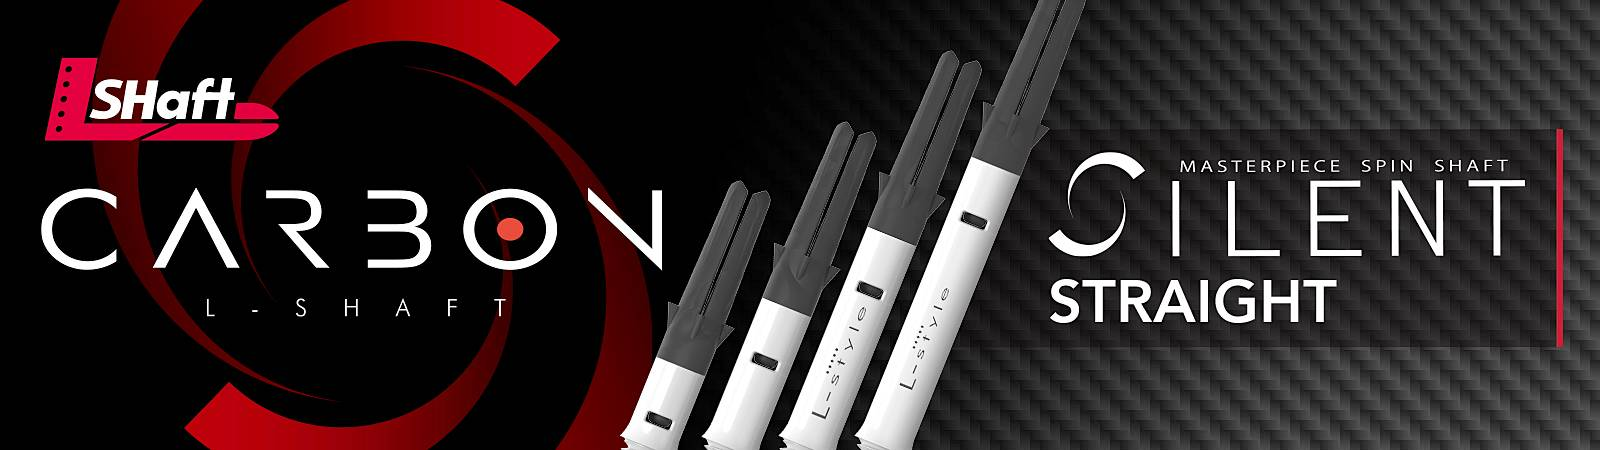 L-Style L-Shaft Carbon Silent Straight Spinner Shafts